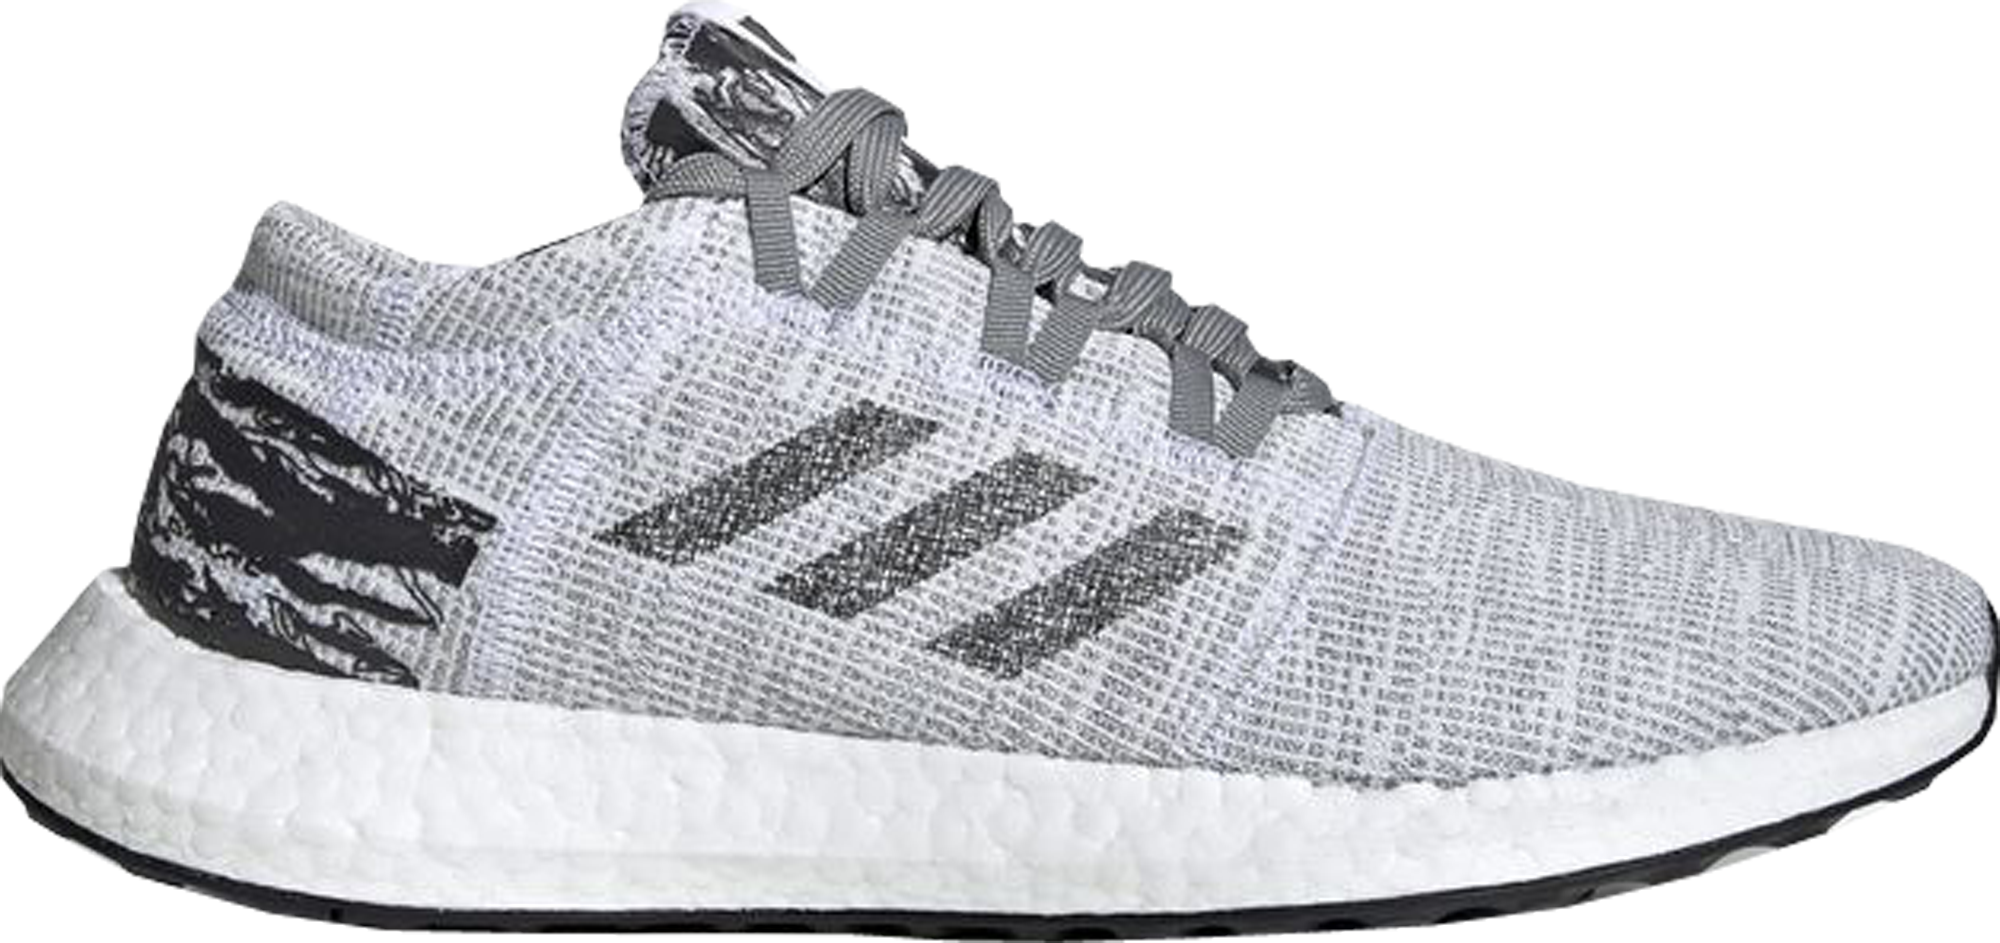 brand new 509a4 99dce ... wholesale adidas pure boost ltd undefeated performance running 740d4  68dc6